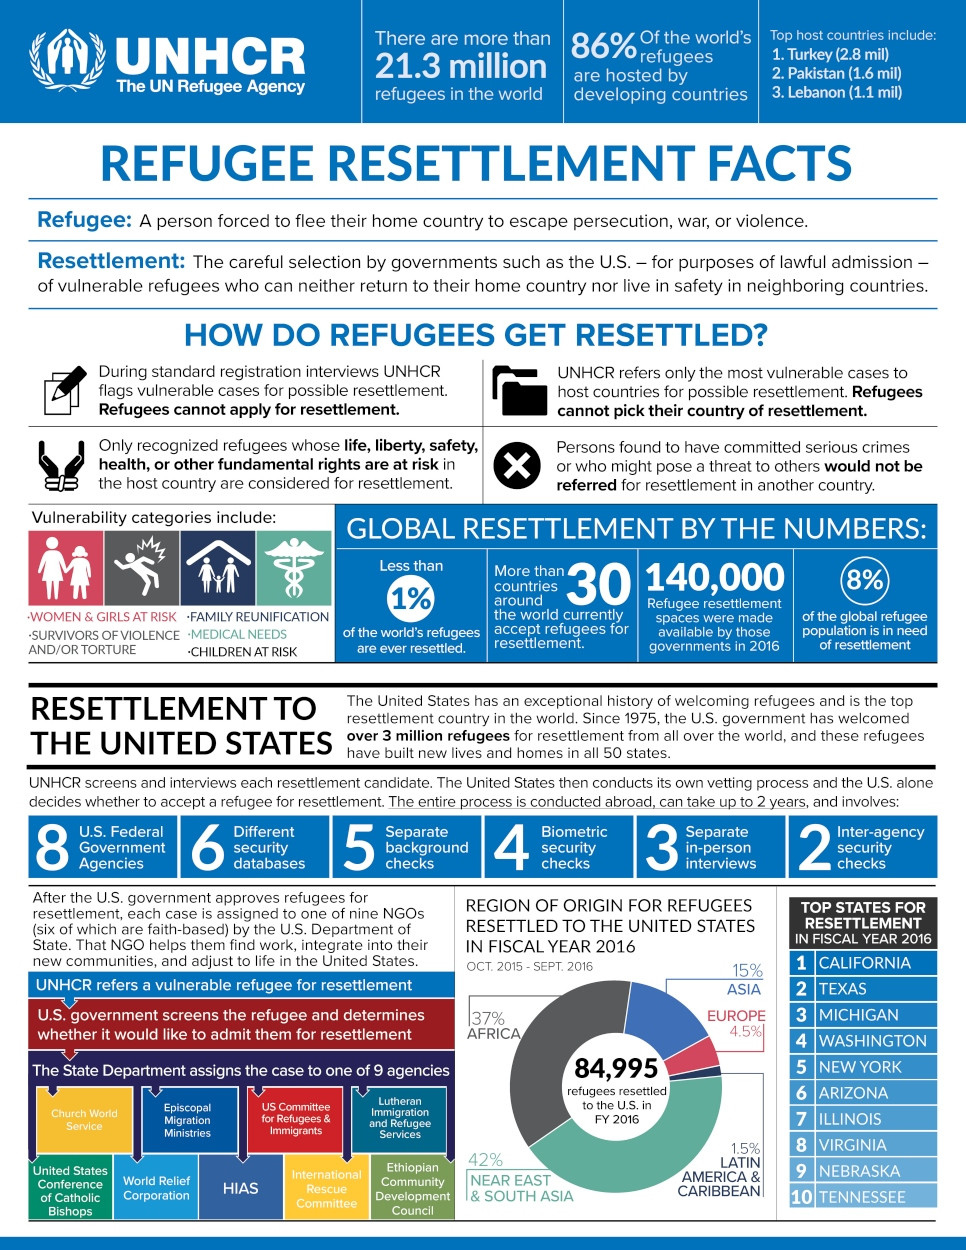 Information used from http://refugees.org/news/extreme-vetting-mean/